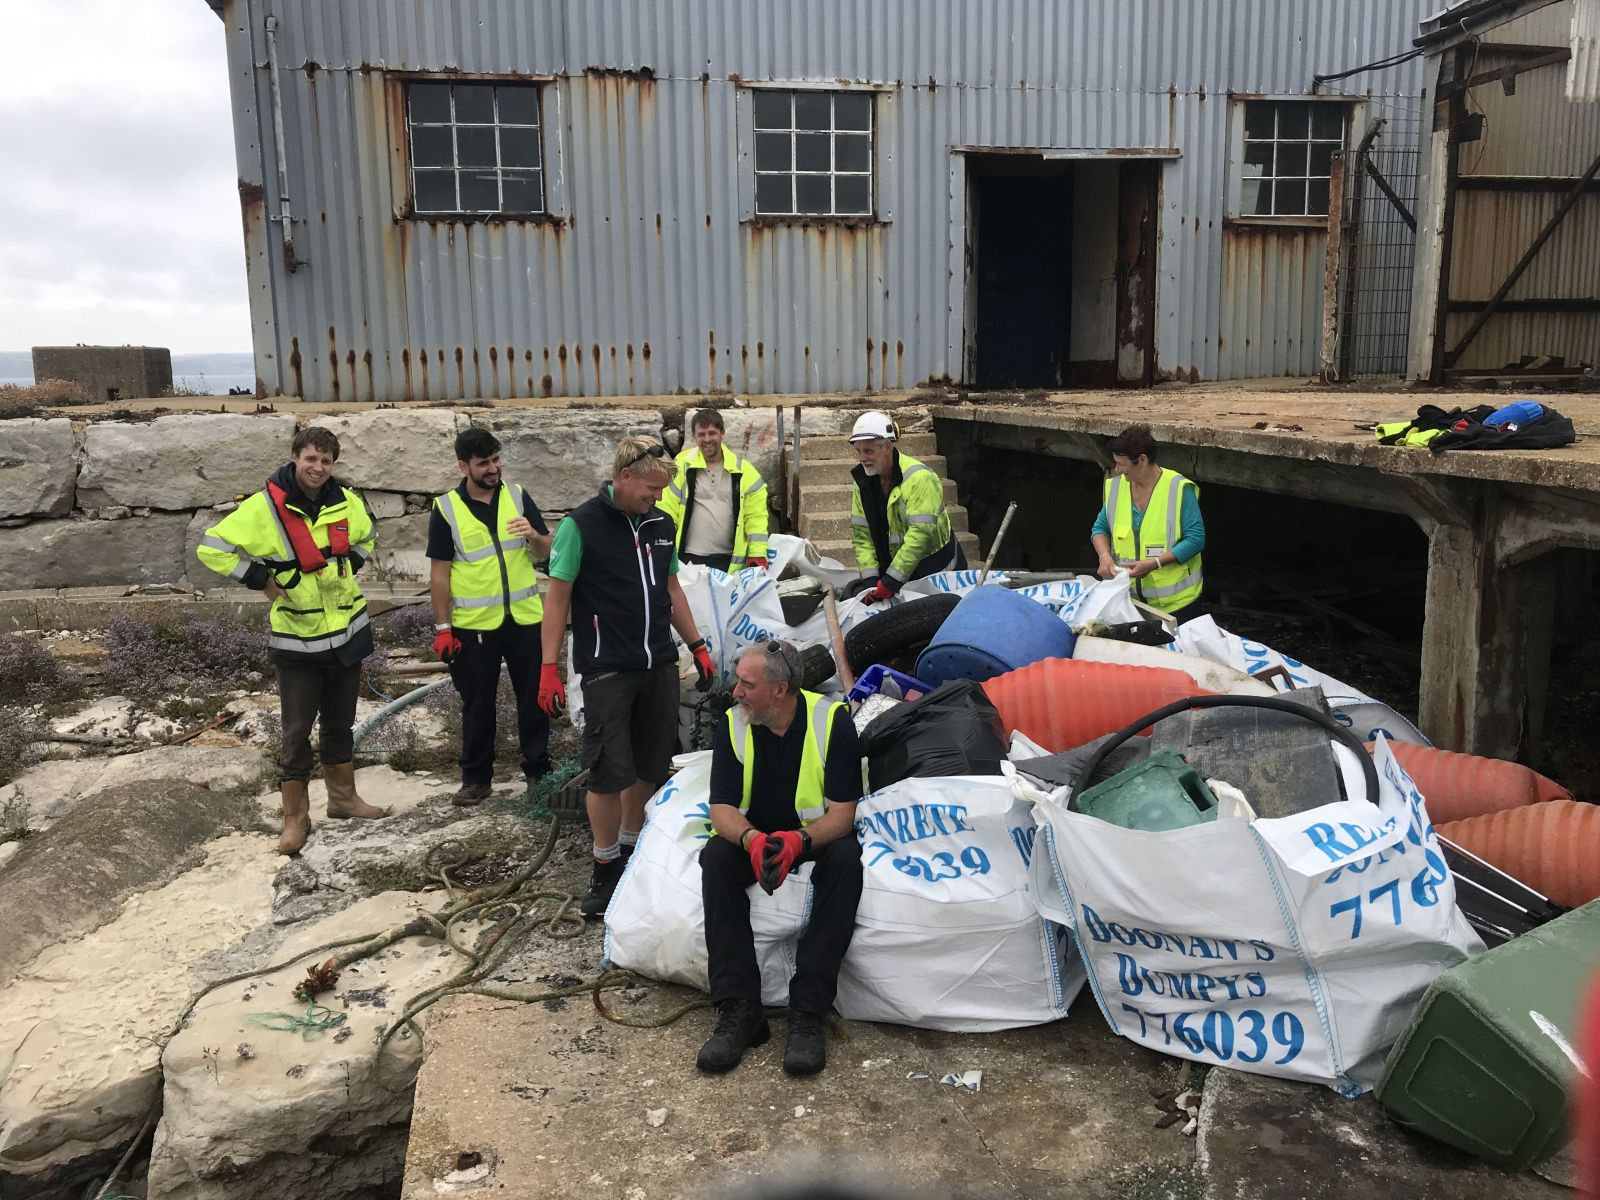 Portland Port commence their yearly Breakwater clean up with the help of Portland Marina